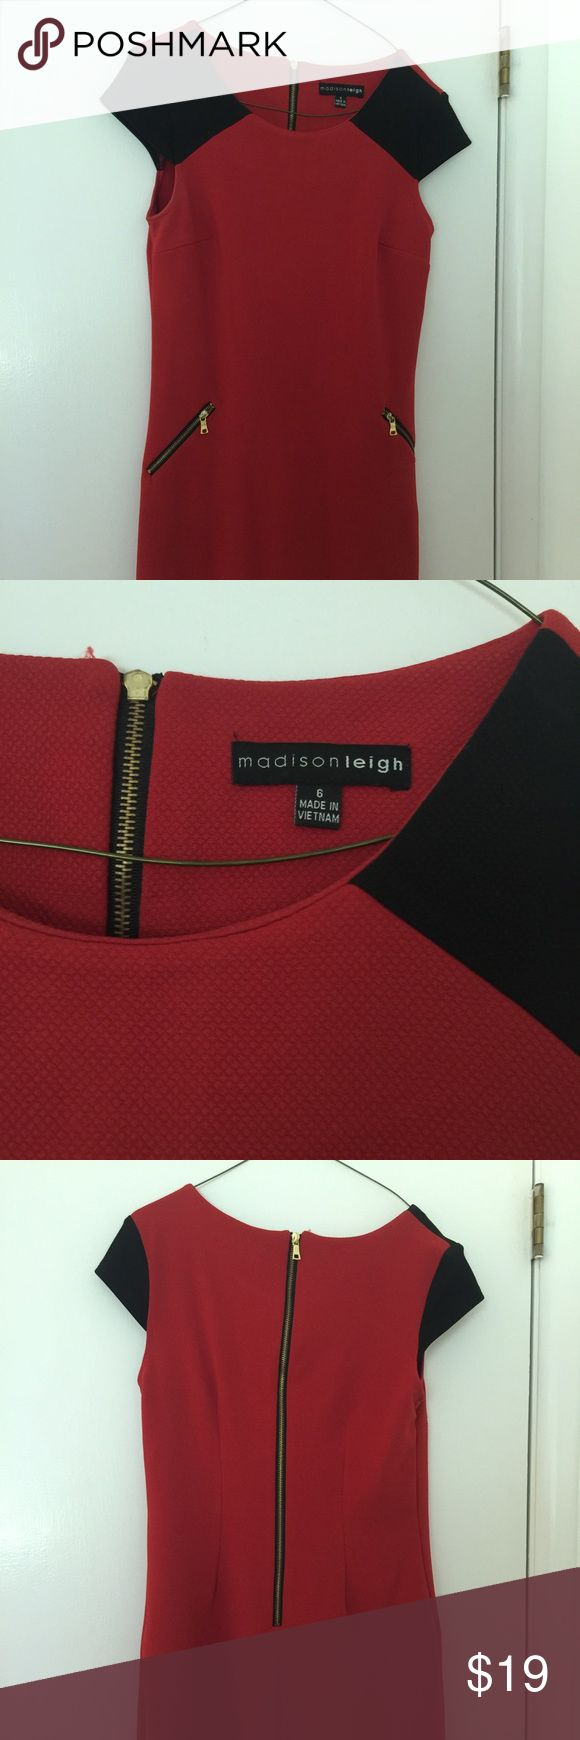 Madison Leigh size 6 Red and Black Shift Dress Beautiful Madison Leigh (size 6) Red and Black shift dress with gold zippers and cap sleeves. Stylish dress for work or play - great for UGA football games! Excellent condition - Only worn once! 94% Polyester 6% Spandex Madison Leigh Dresses Midi